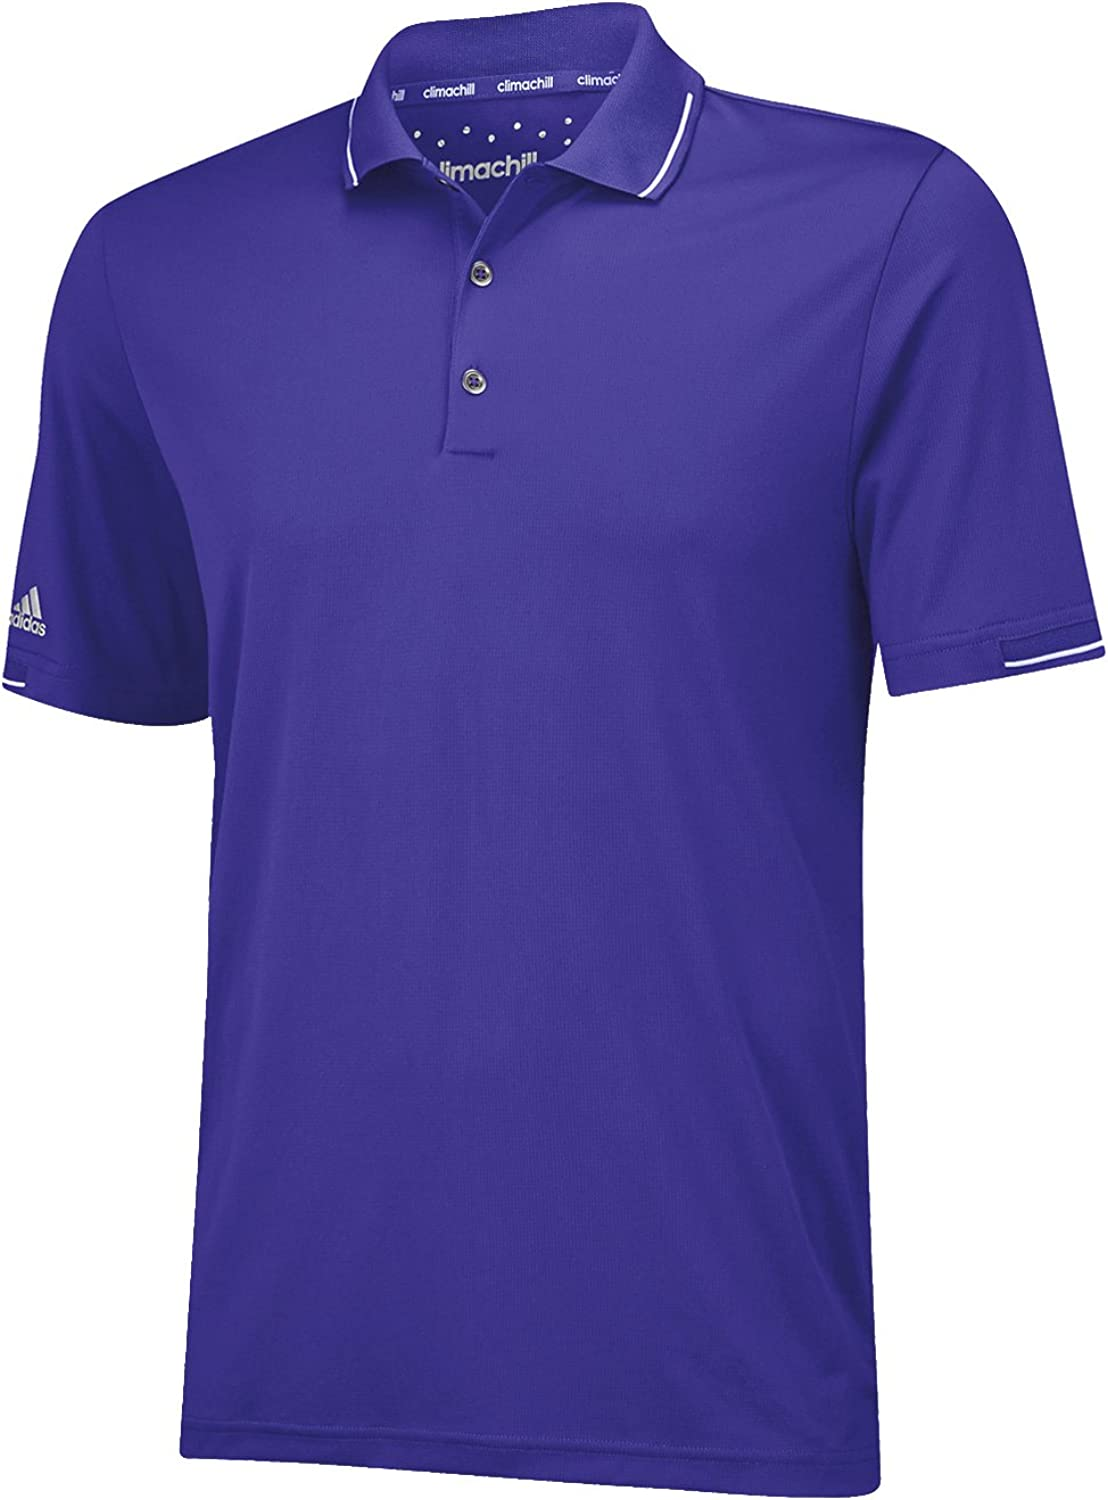 adidas Golf Men's Climachill Solid Polo